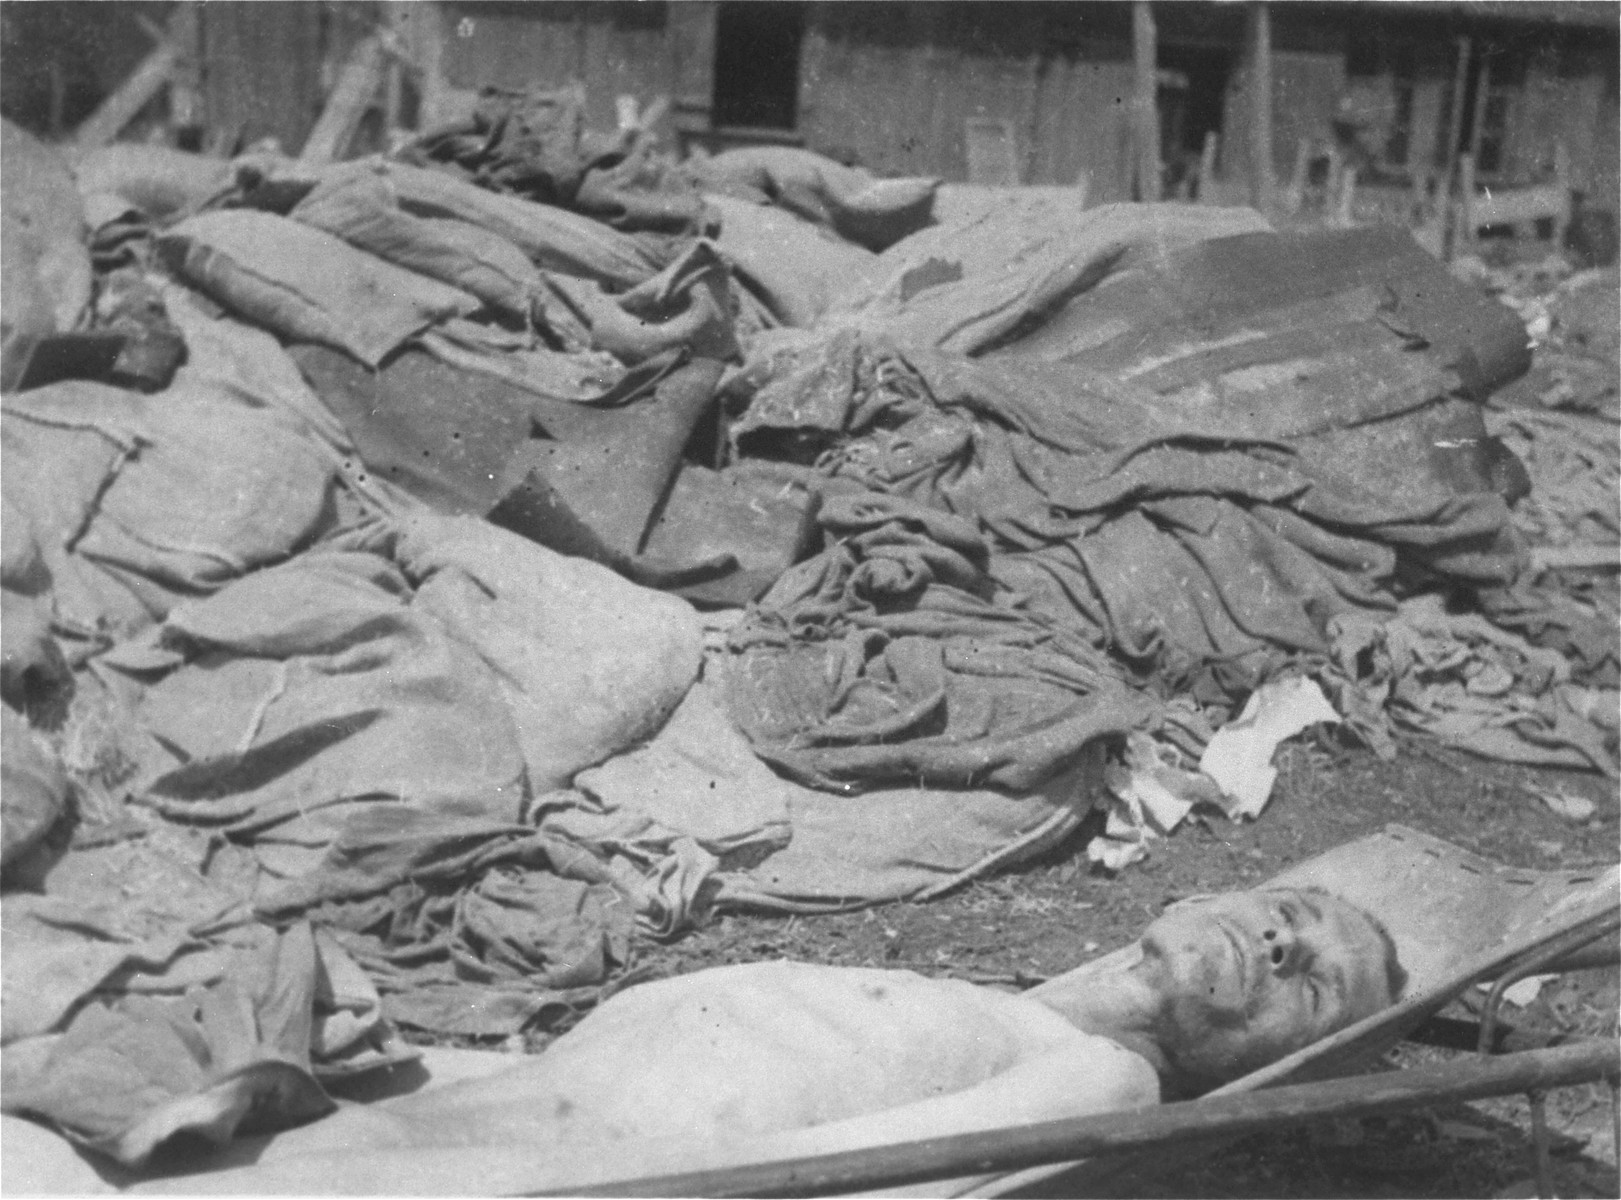 The body of a former prisoner lies outside on a stretcher next to a pile of clothing in the newly liberated Ebensee concentration camp.